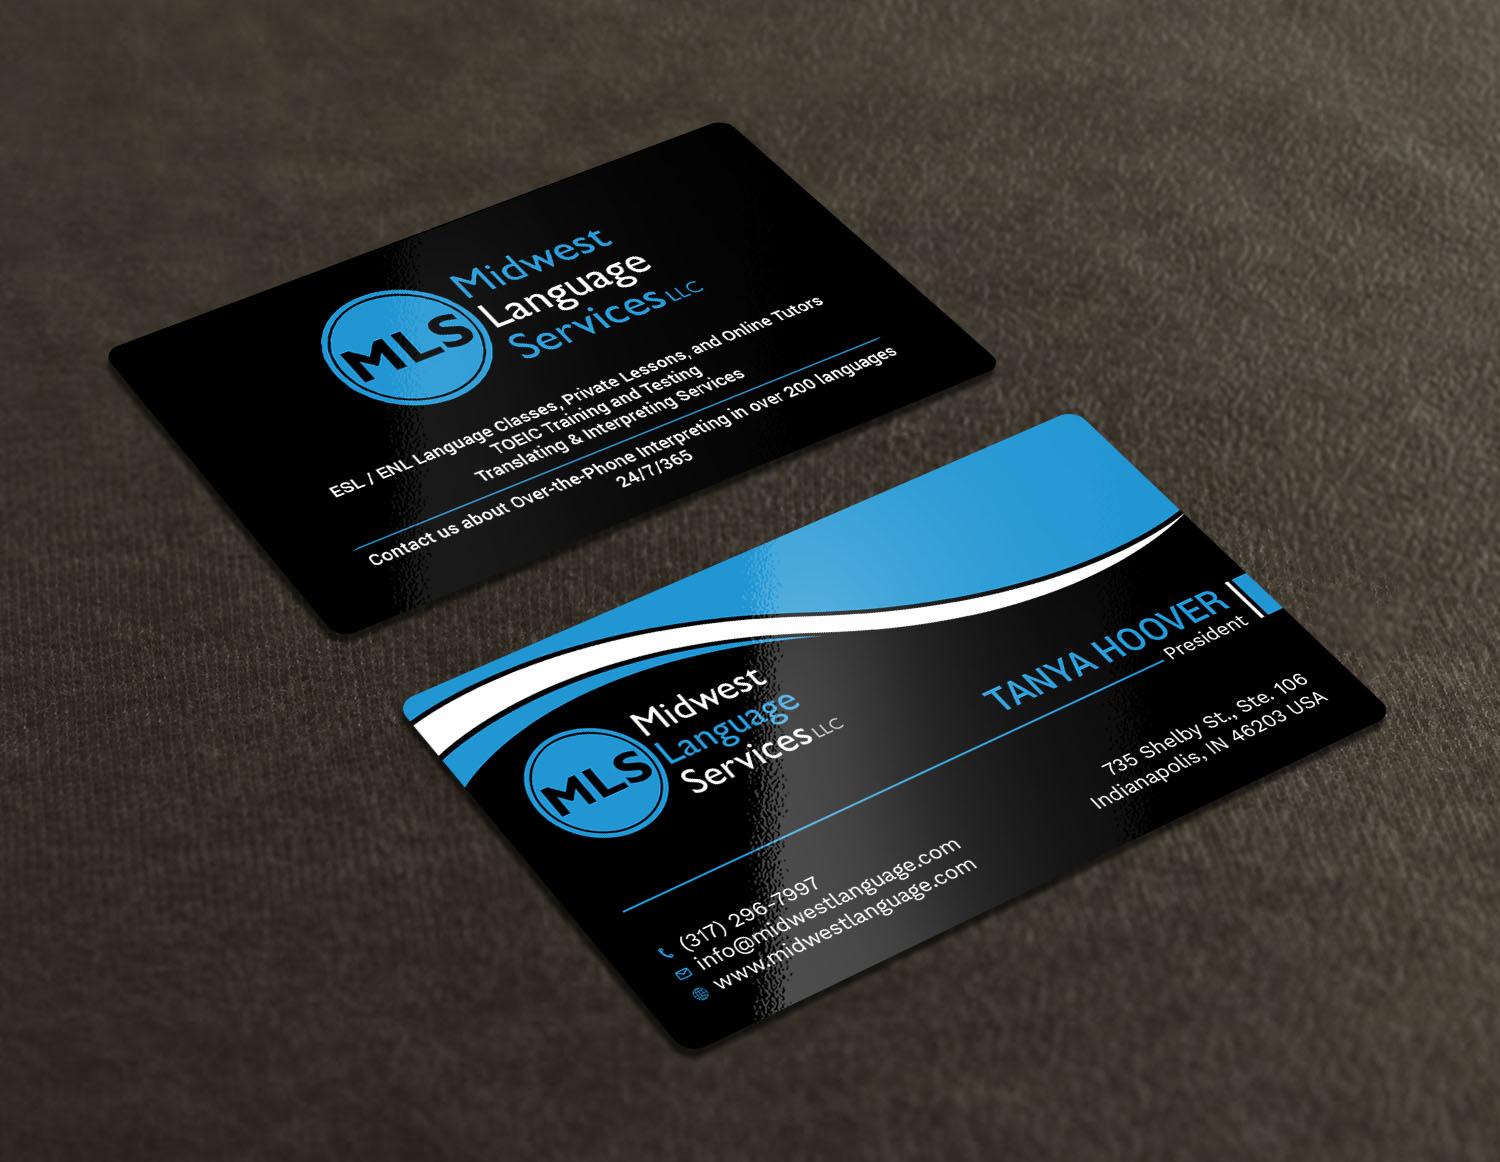 Serious modern business business card design for midwest language business card design by avanger000 for midwest language services llc design 17735784 reheart Image collections